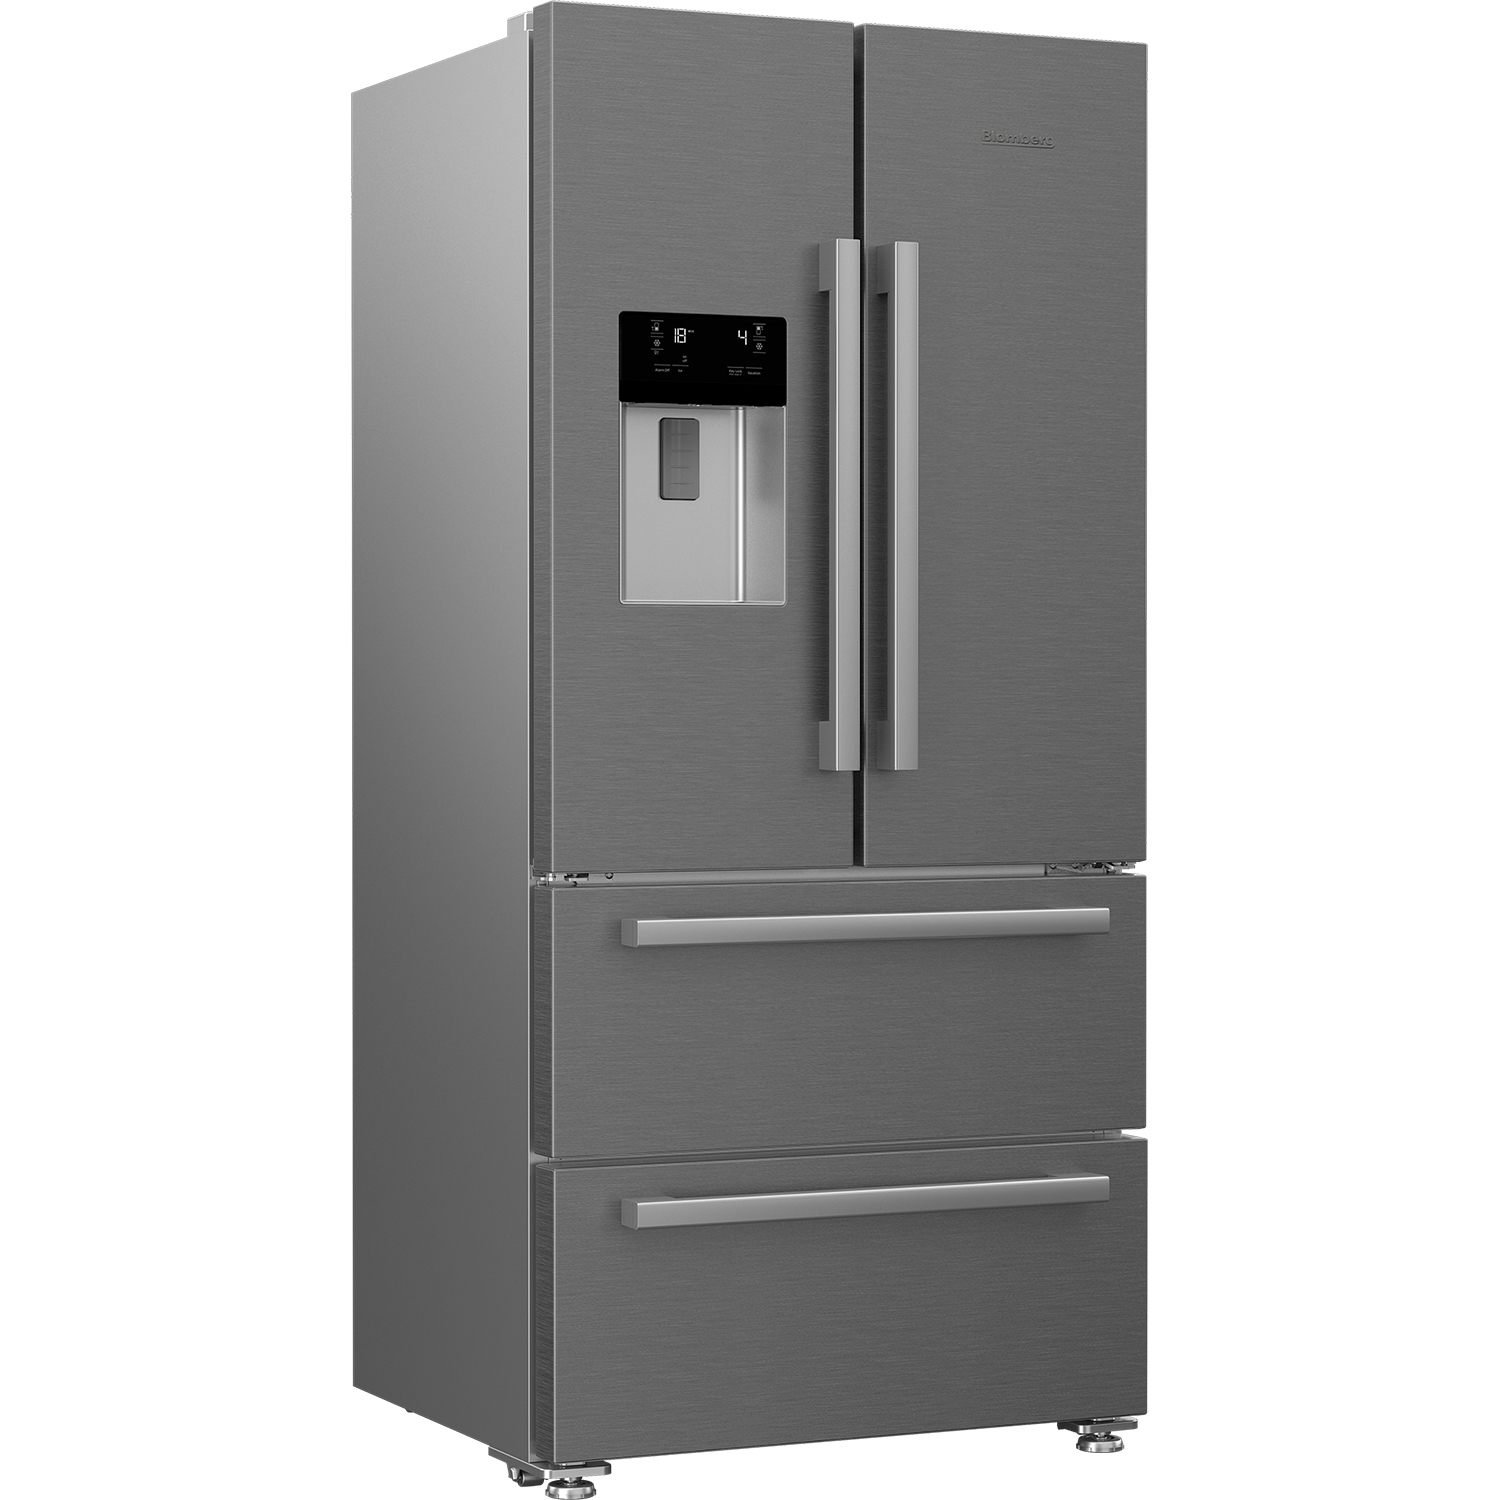 Blomberg Frost Free American Style Fridge Freezer - Stainless Steel - A+ Energy Rated - 2